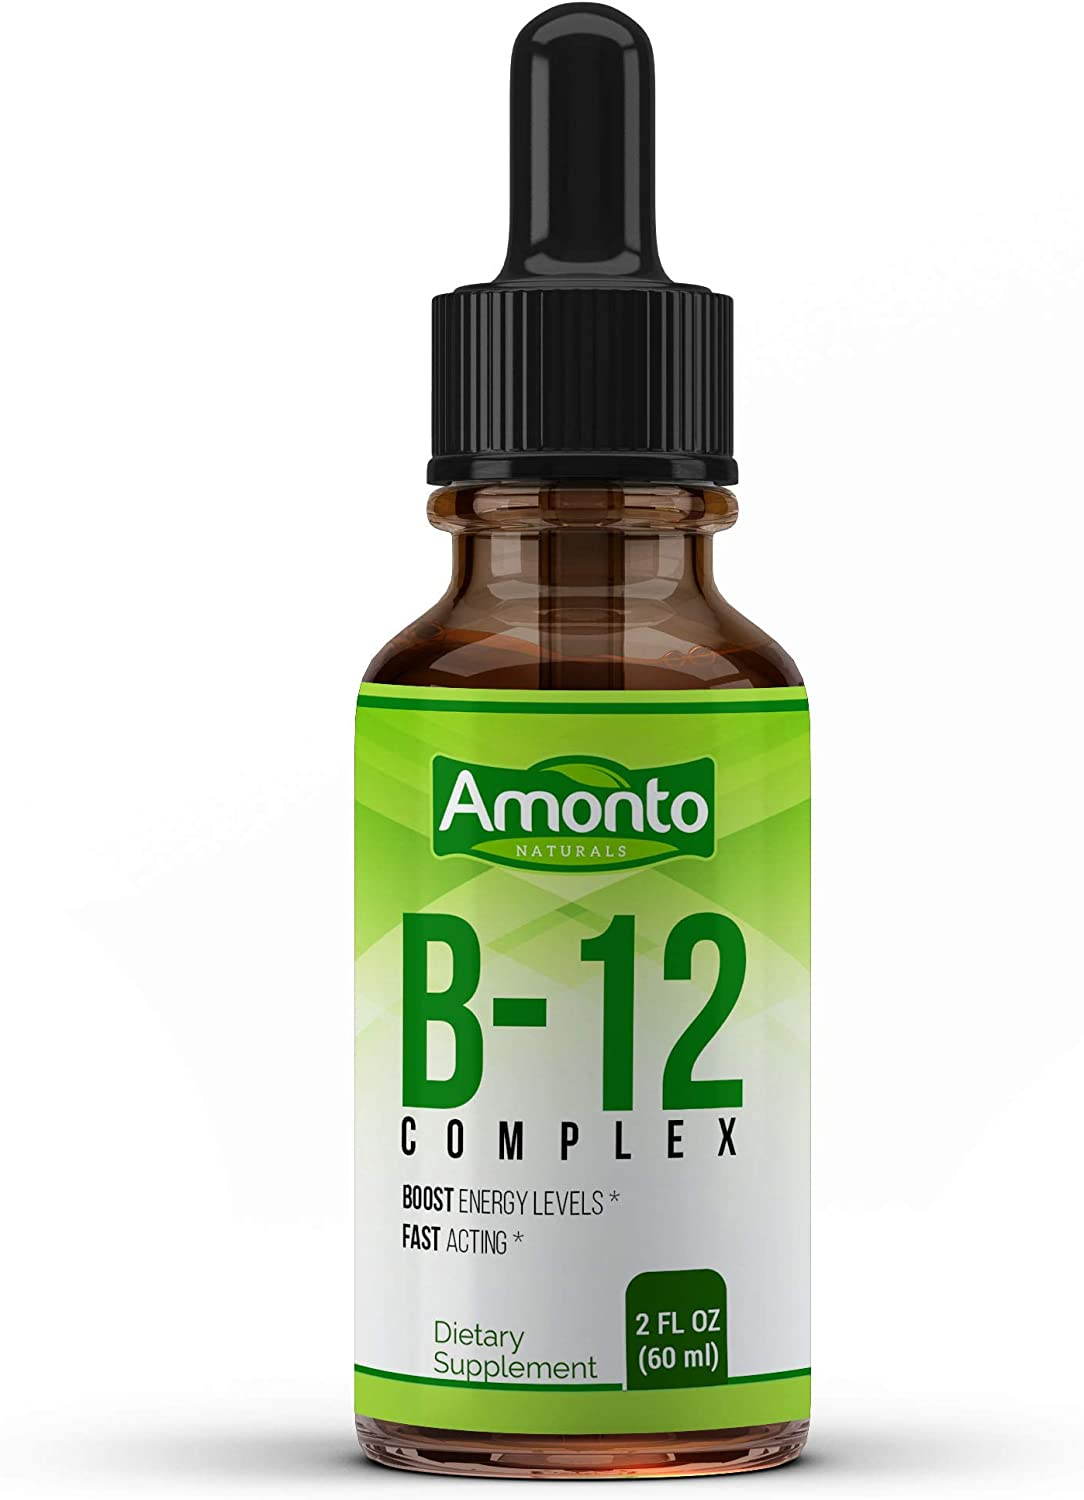 AMONTO Naturals Vitamin B12 Liquid Drops – Vitamin B12 Sublingual for Extra-Fast Energy Boost, Increase Metabolism, Improves Mental Clarity, Cognitive Functions - B12 Complex Vitamins High Potency fo